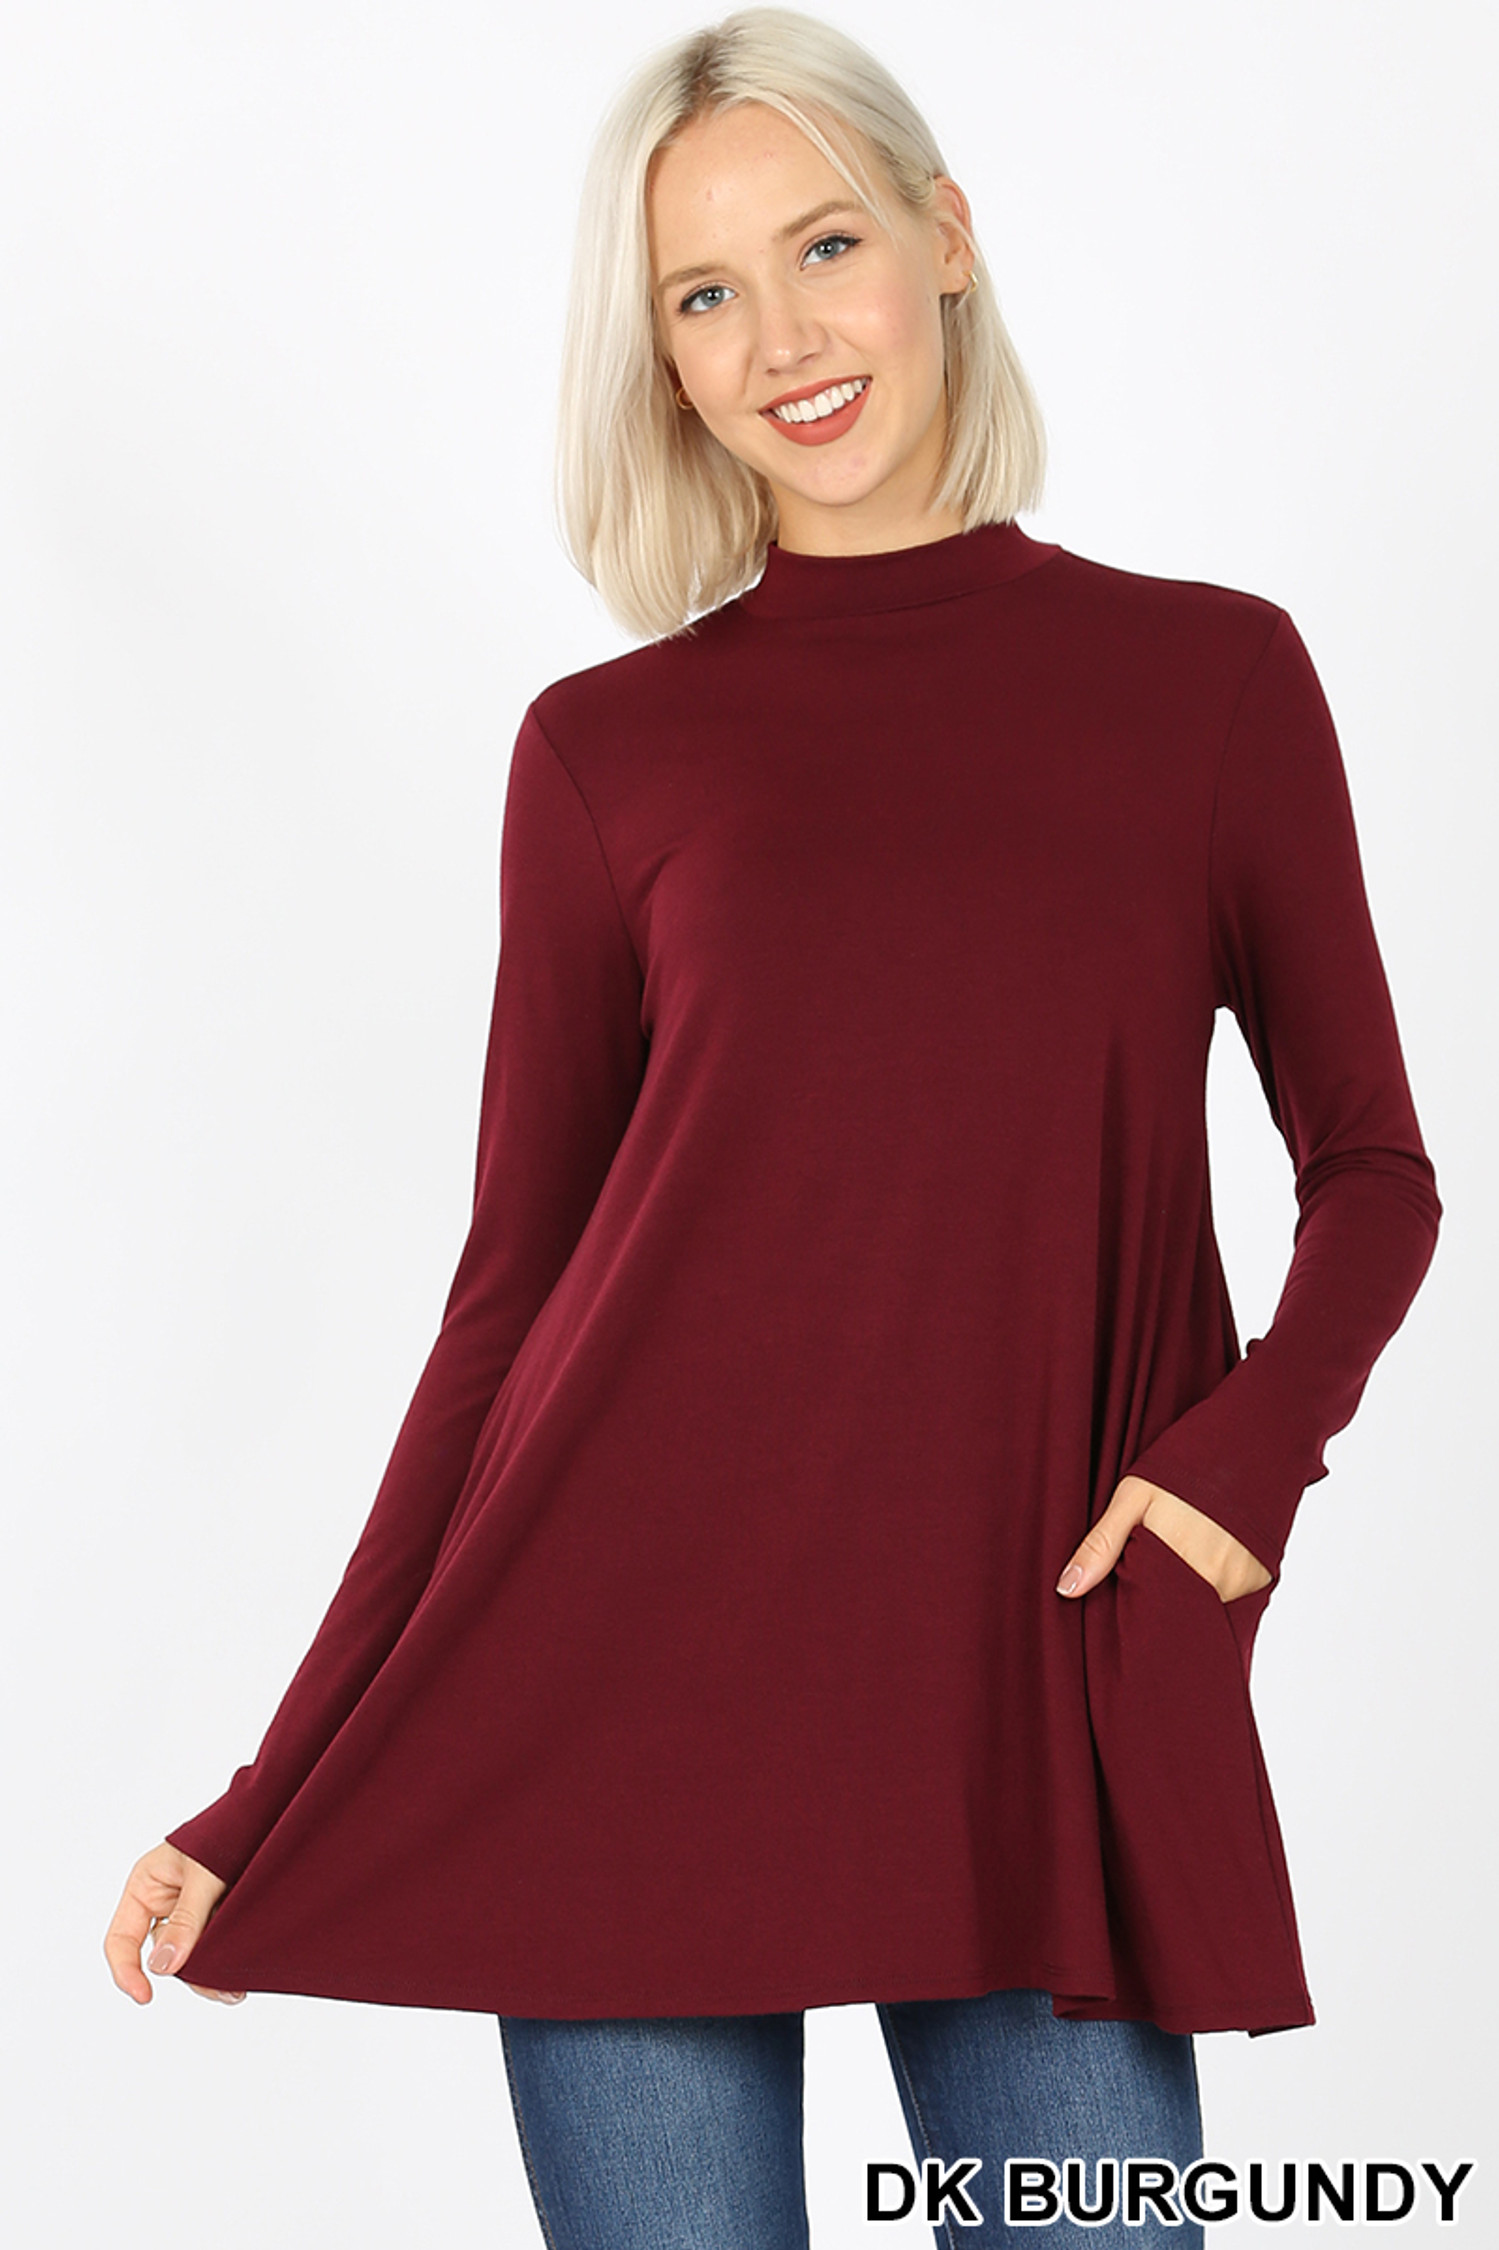 Front image of Dk Burgundy Long Sleeve Mock Neck Top with Pockets